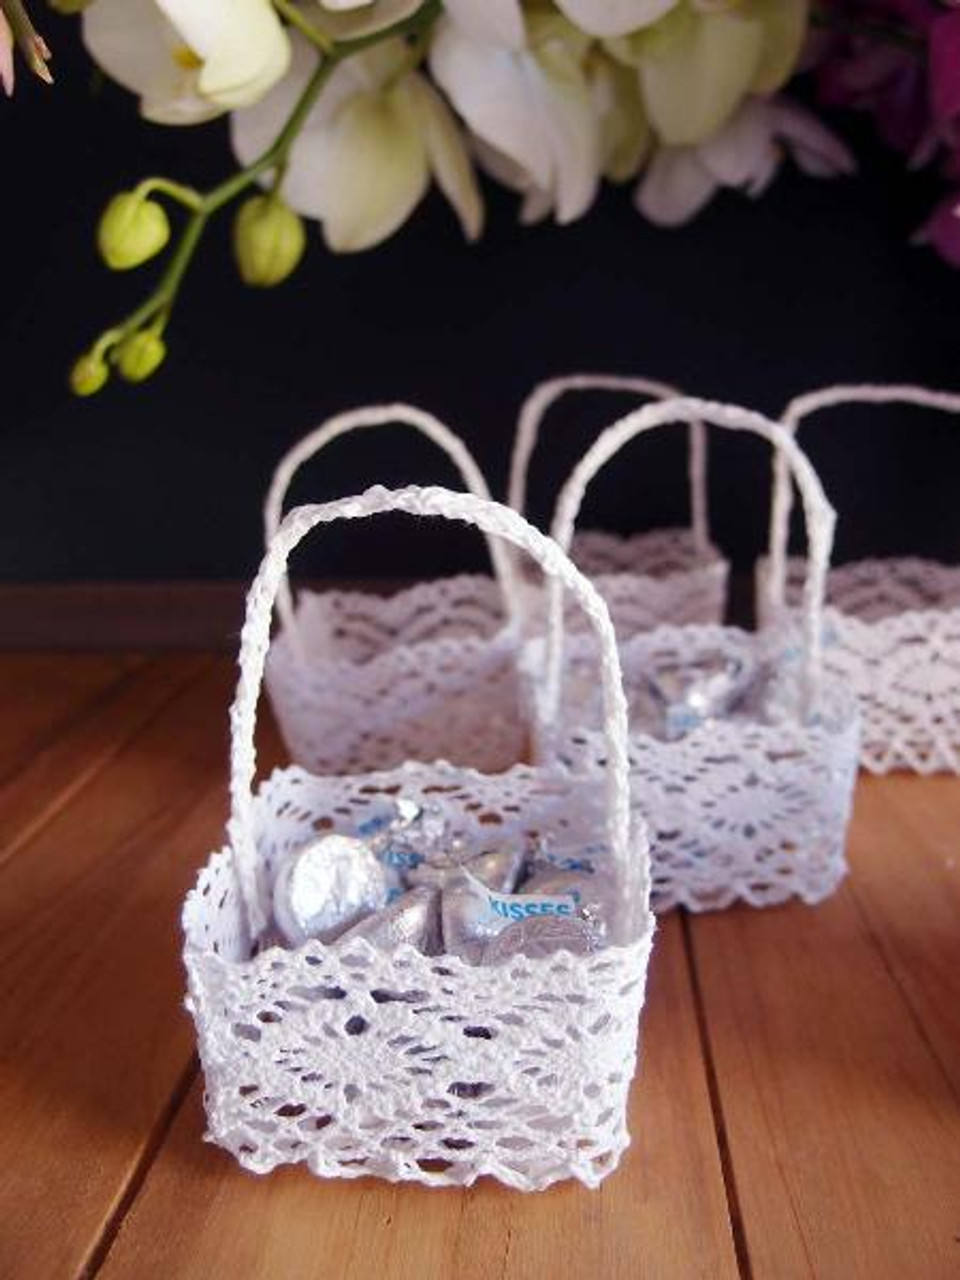 Mini Lace Favor Baskets Square LS189-81, Base  2.75 x 2.75 inches x Height  1.75 inches | Packaging Decor